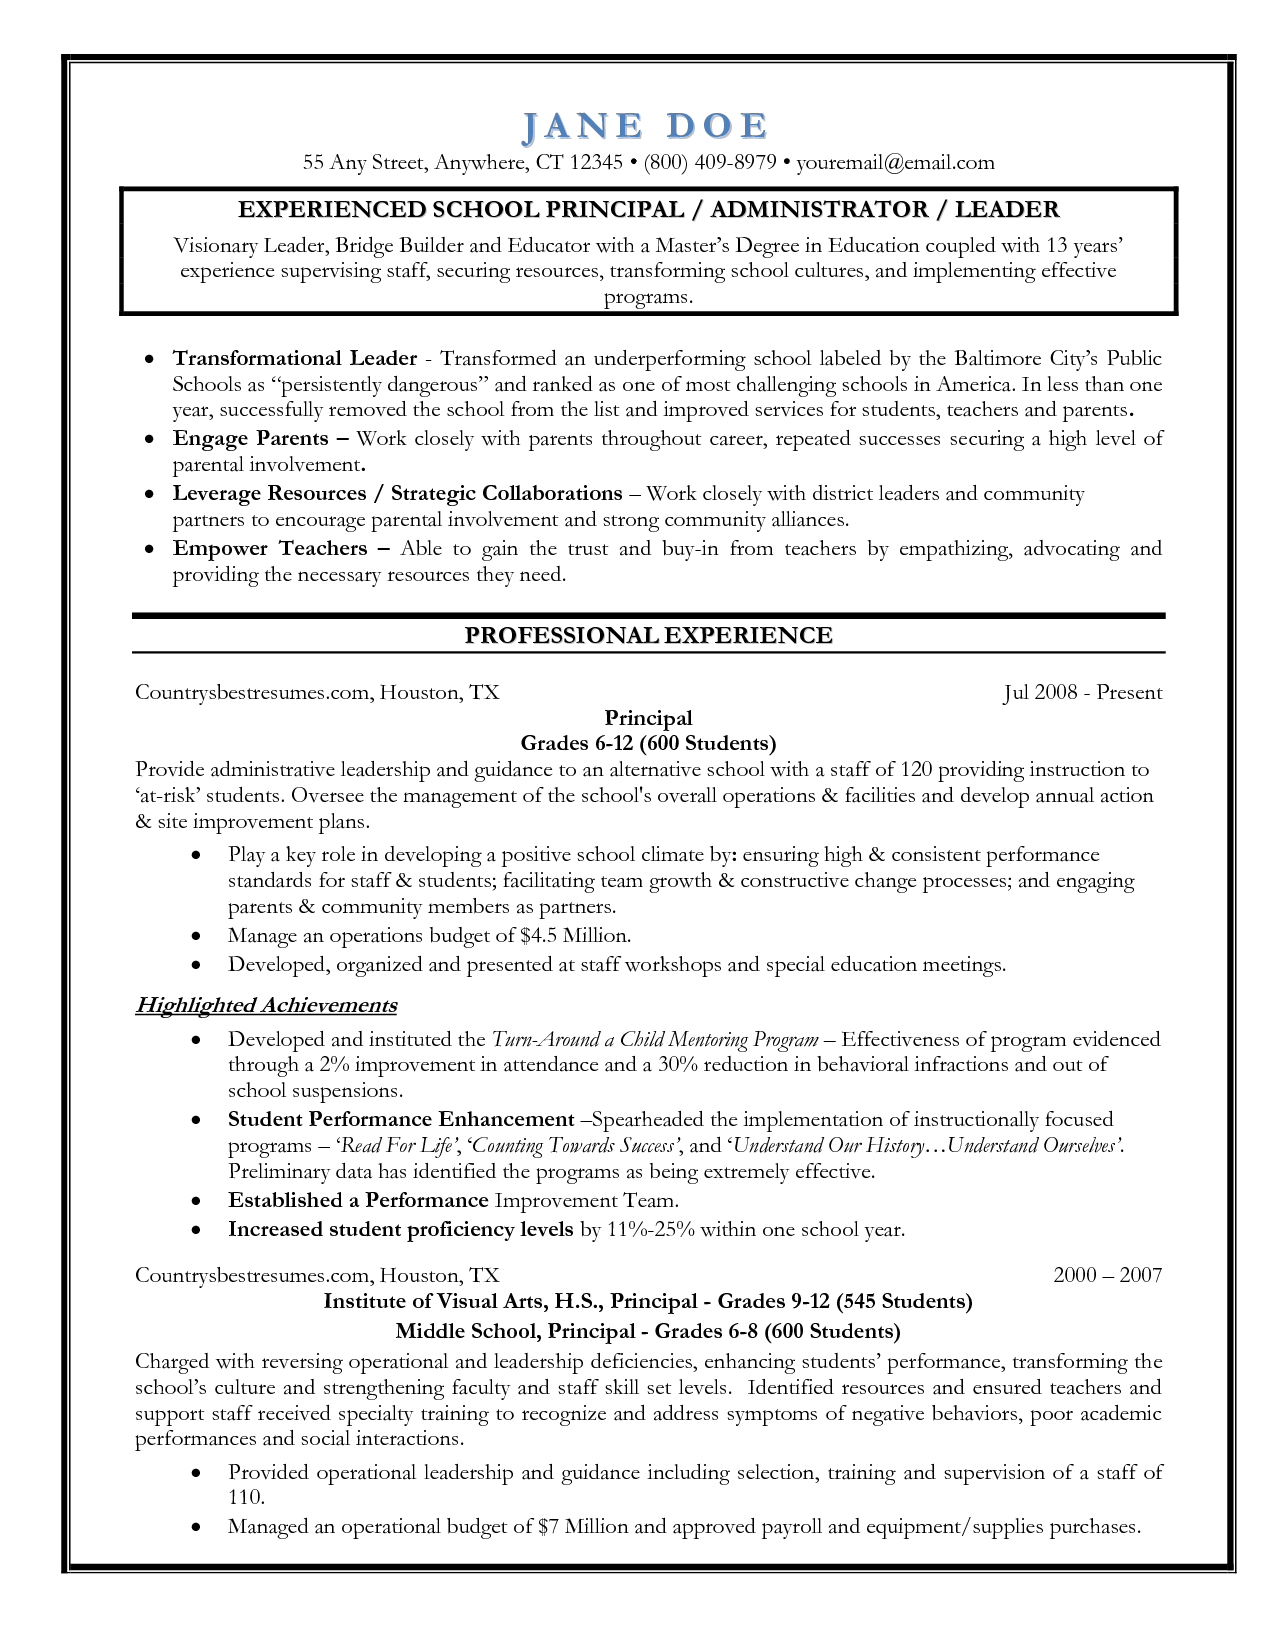 Teaching Resume Samples Entry Level Entry Level Assistant Principal Resume Templates Senior